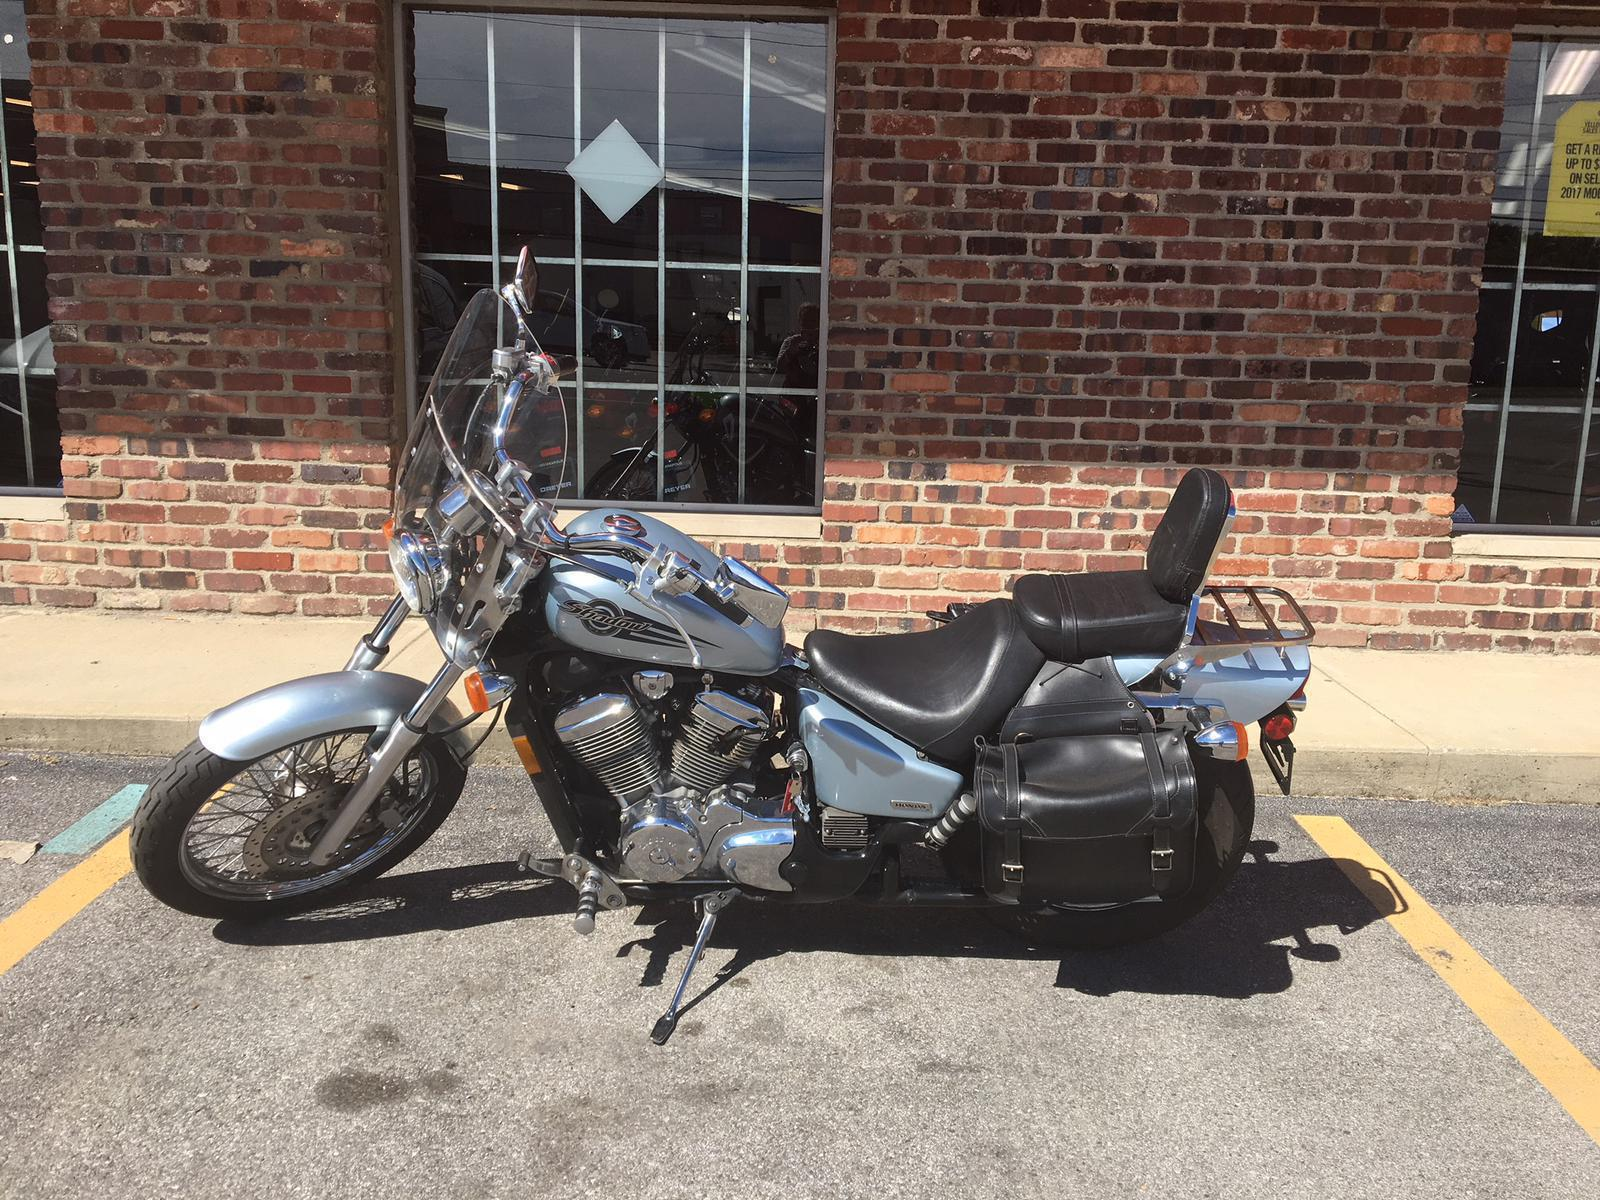 2007 Honda Shadow Vlx Deluxe For Sale In Indianapolis Dreyer Fuel Filter Starting At359900